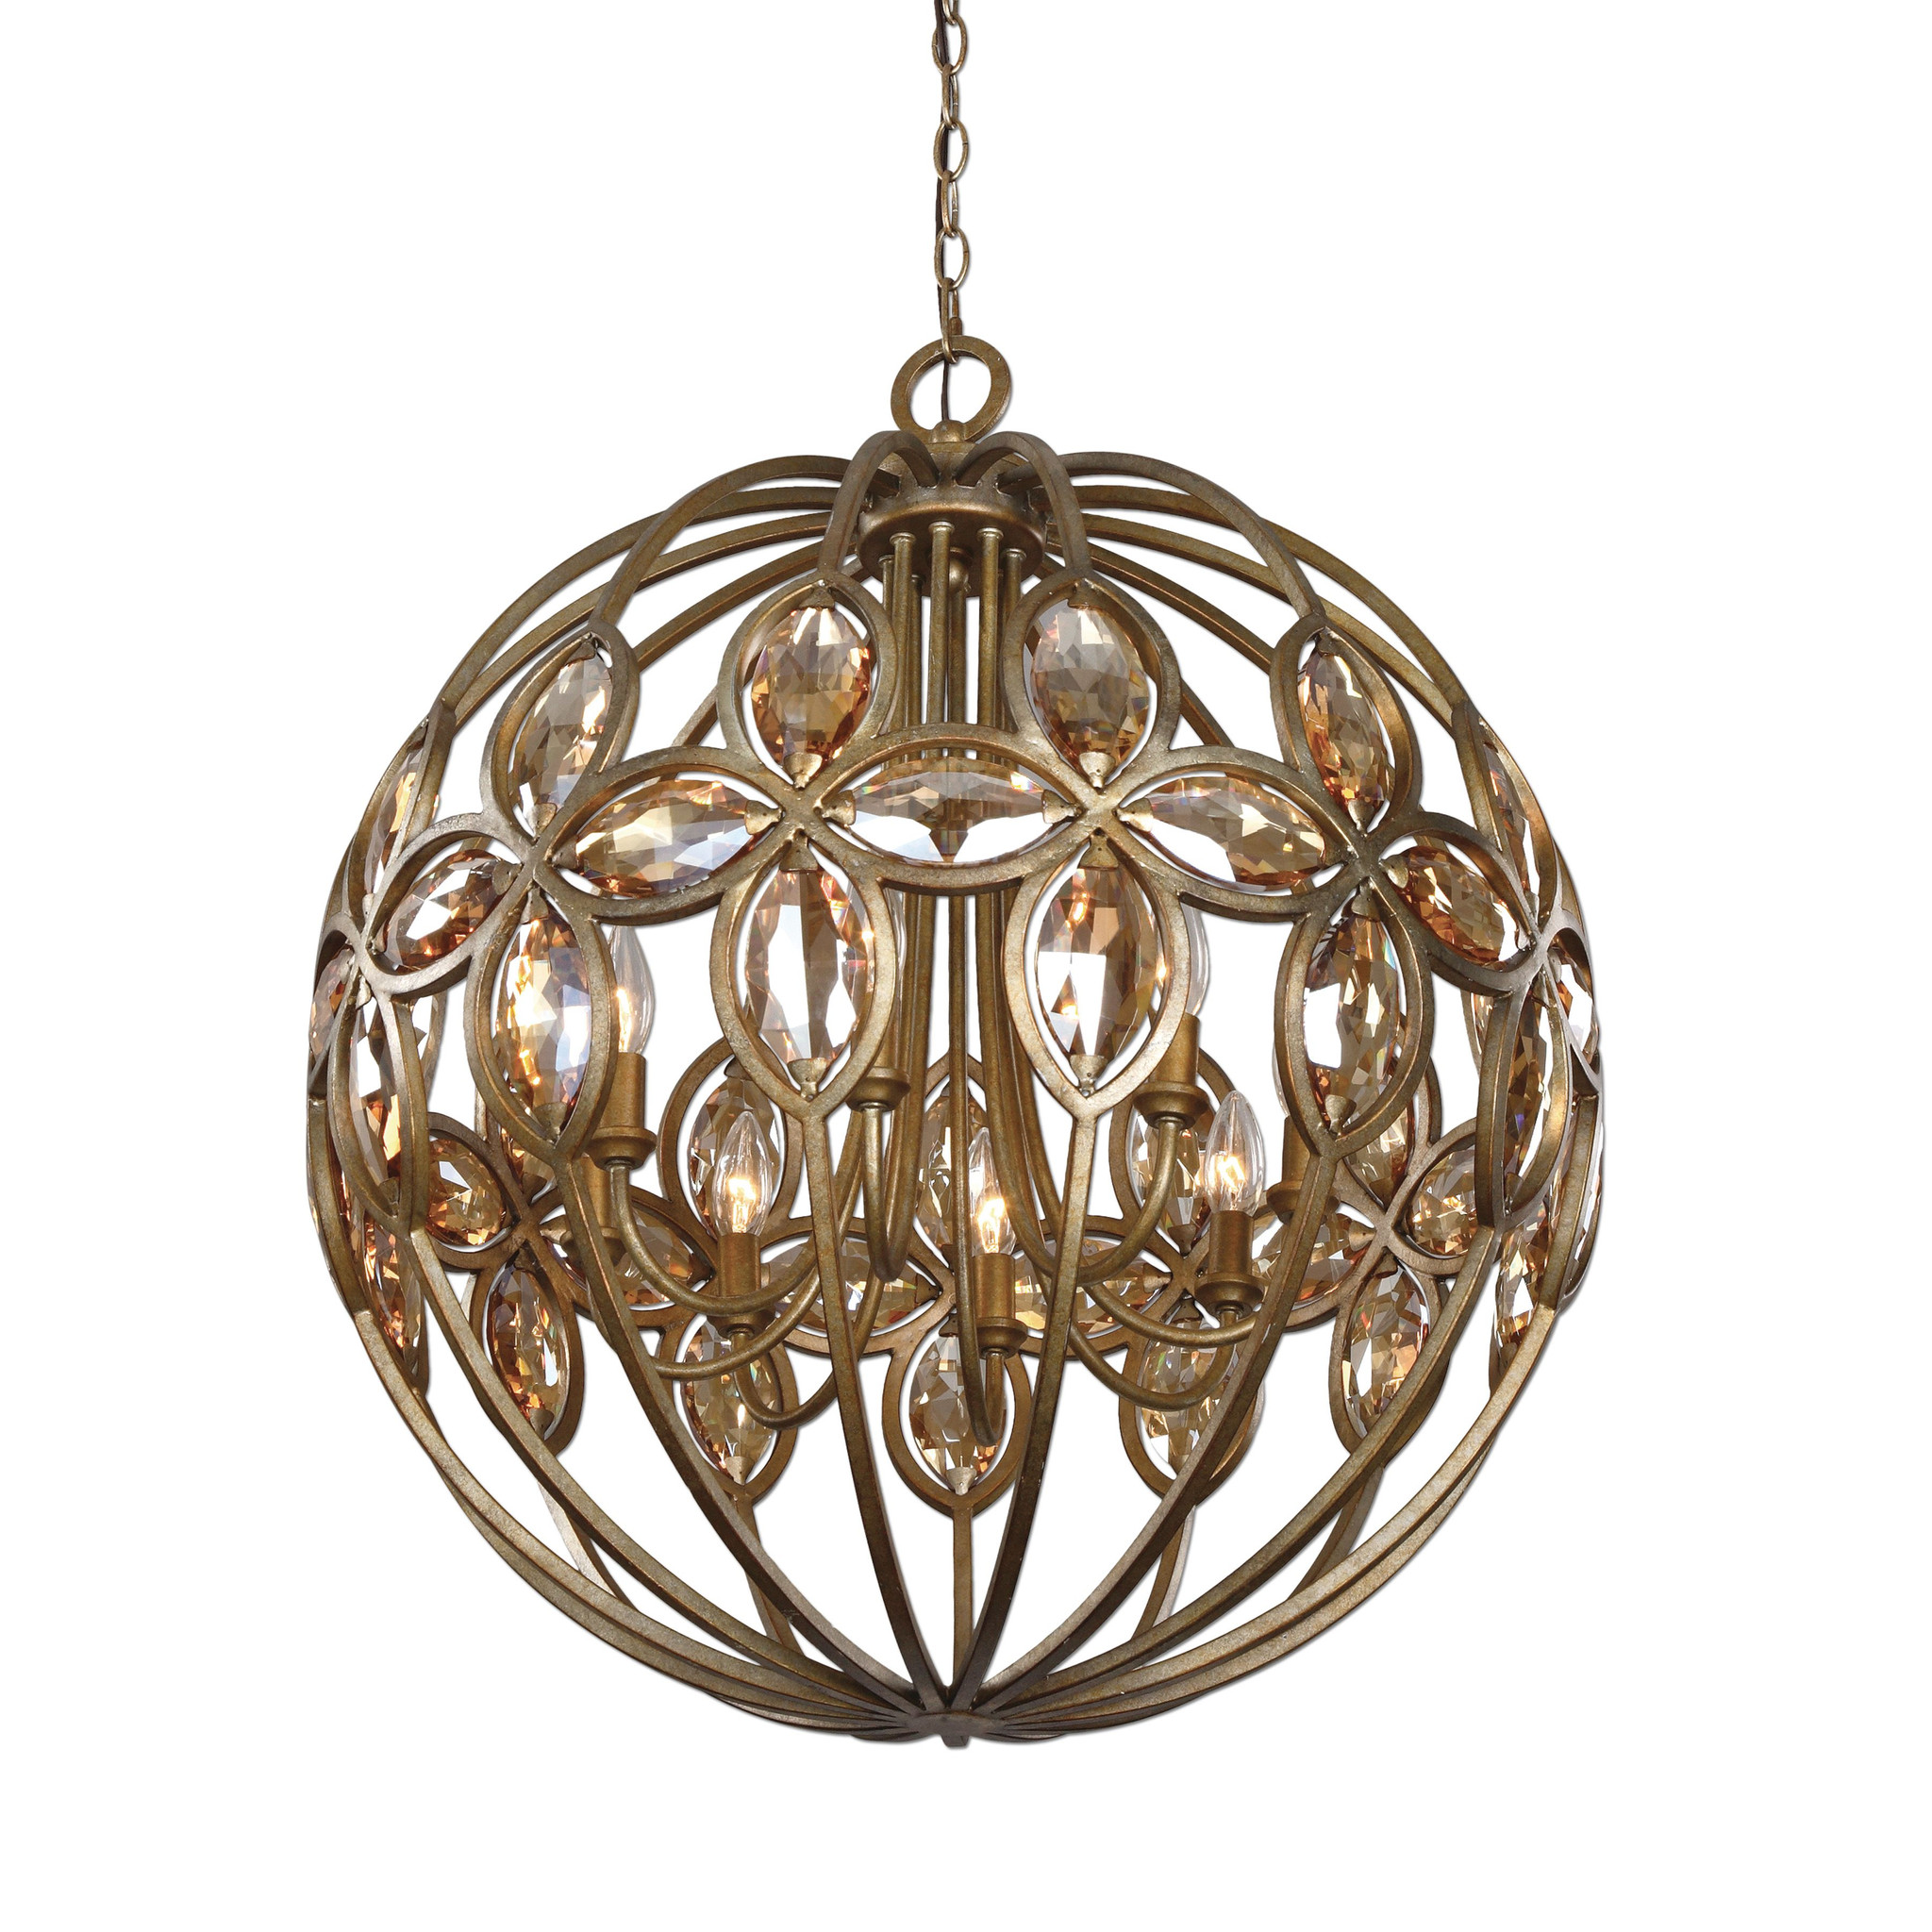 Comfy sphere chandelier metal orb chandelier with interesting Cheap Price for your Home Lighting